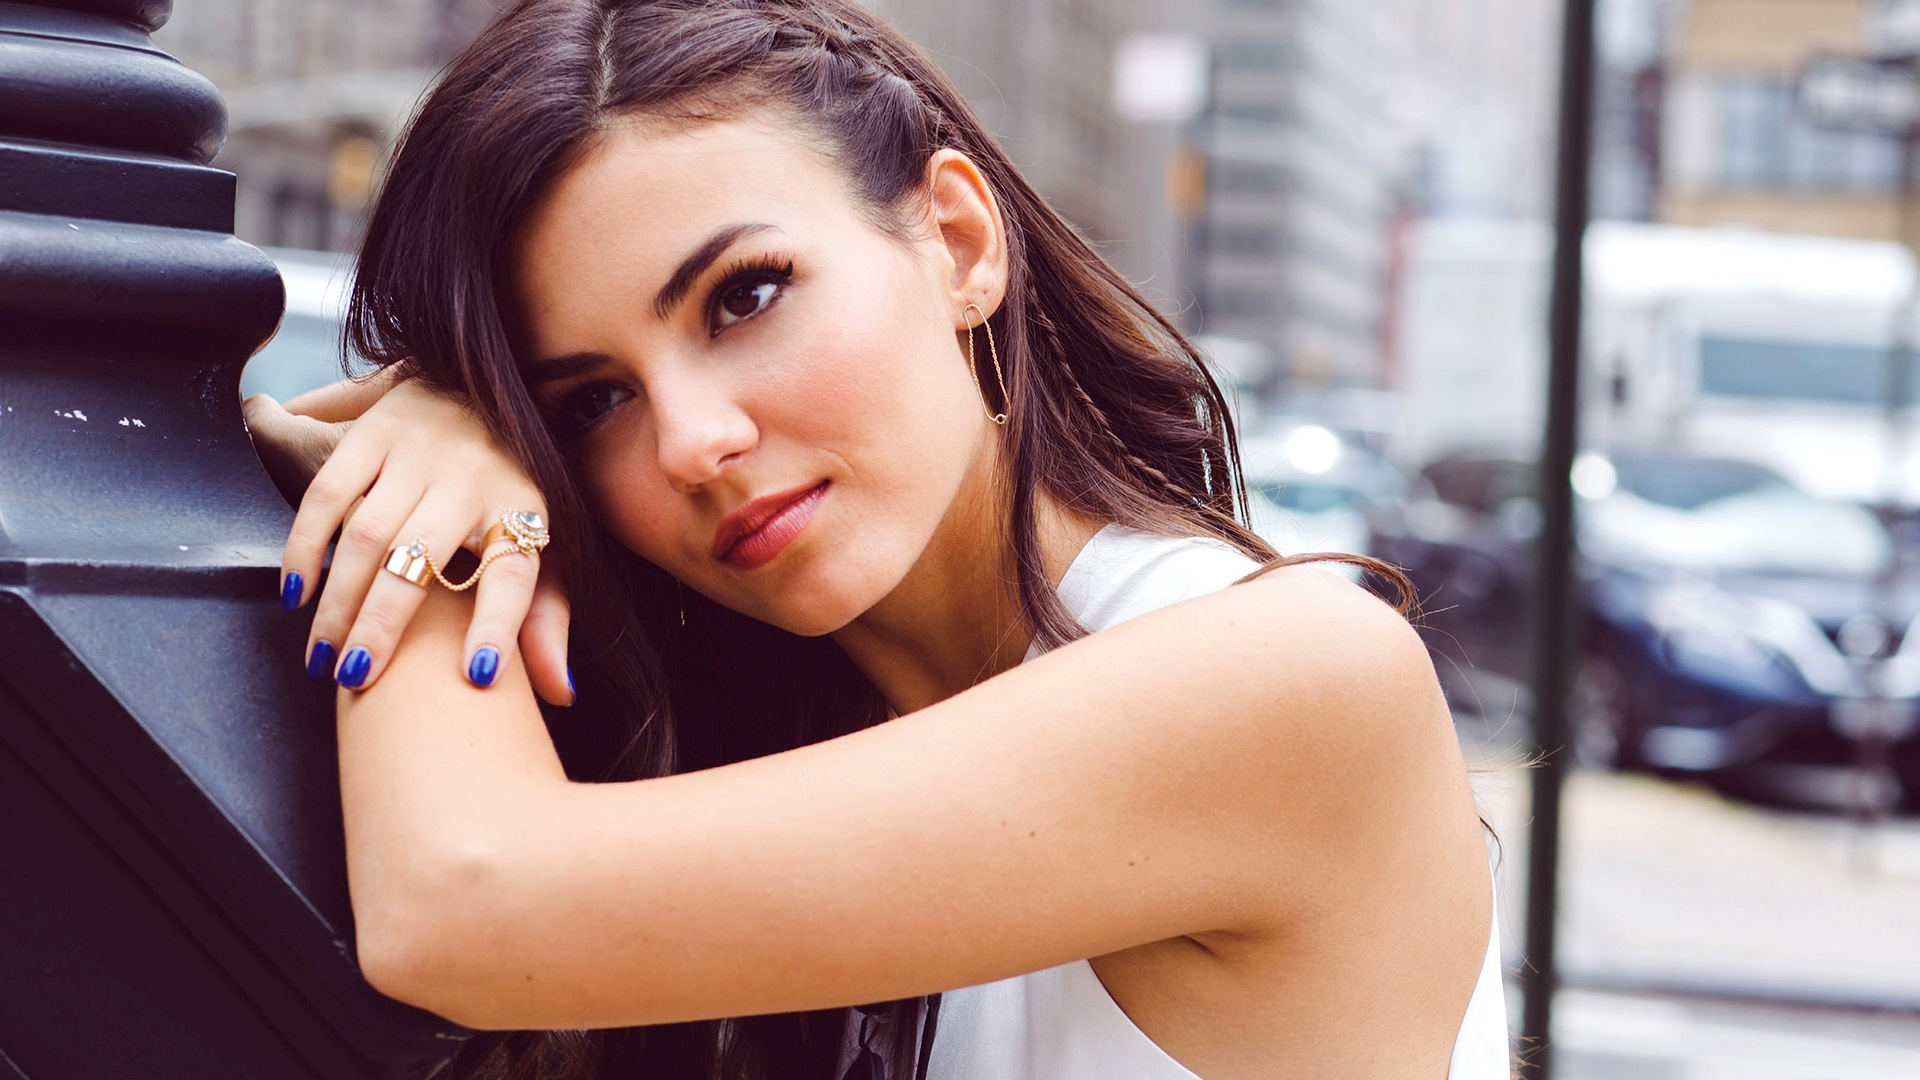 victoria justice fantastic stylish pose background desktop mobile free hd pictures